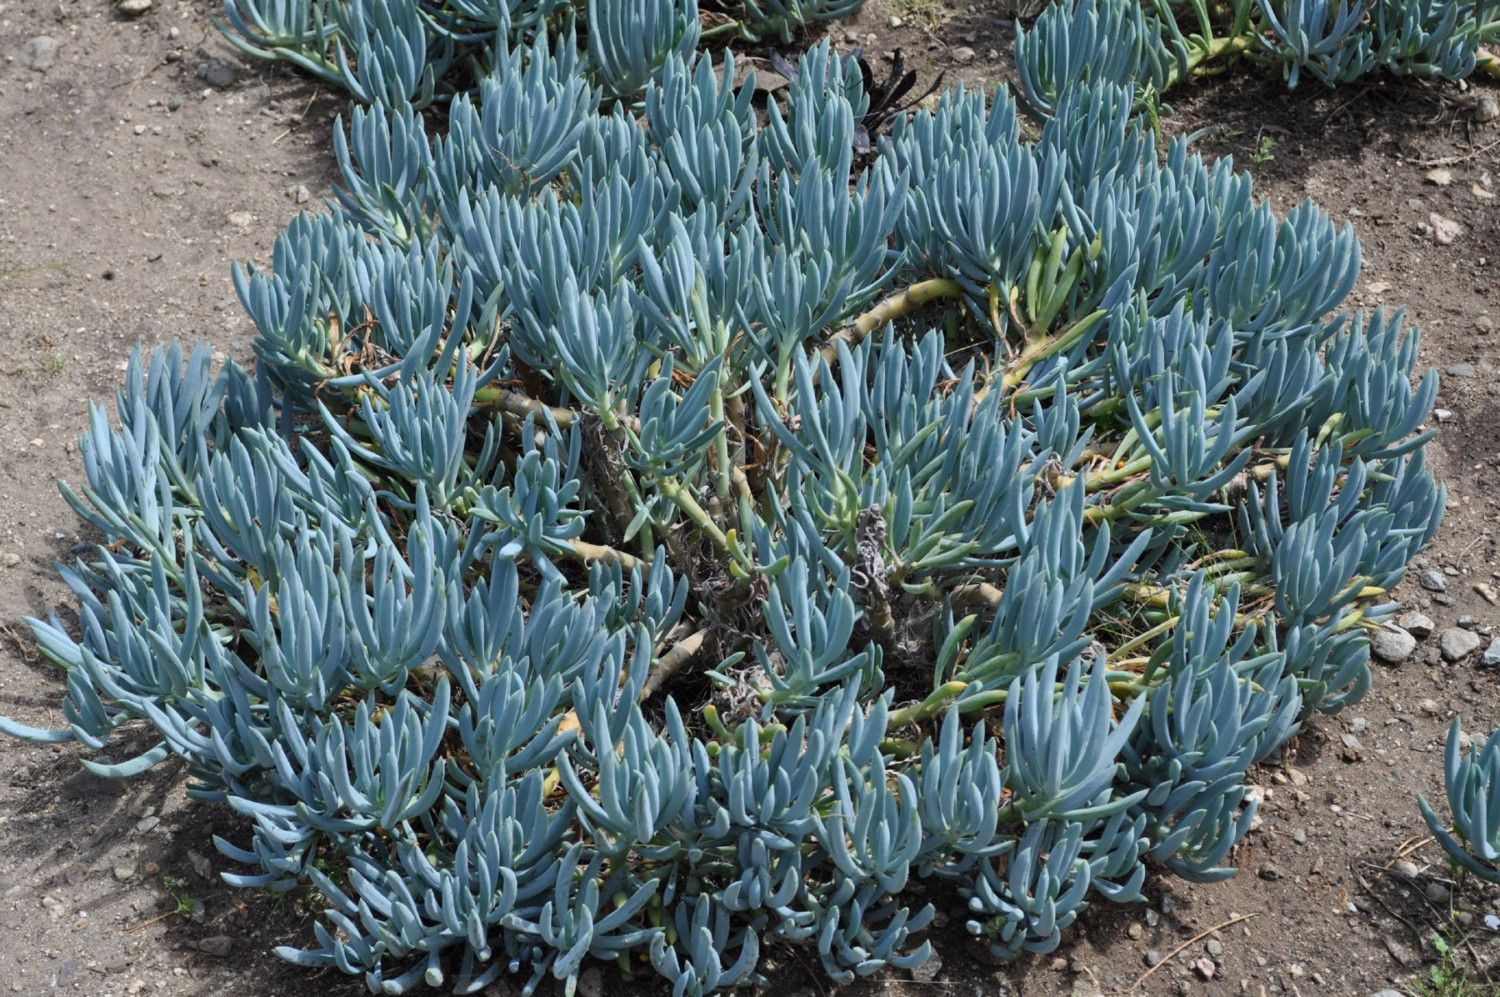 Blue chalk sticks plant - Senecio Mandraliscae Blue Chalk Sticks Are A Succulent Plant With Elongated Blue